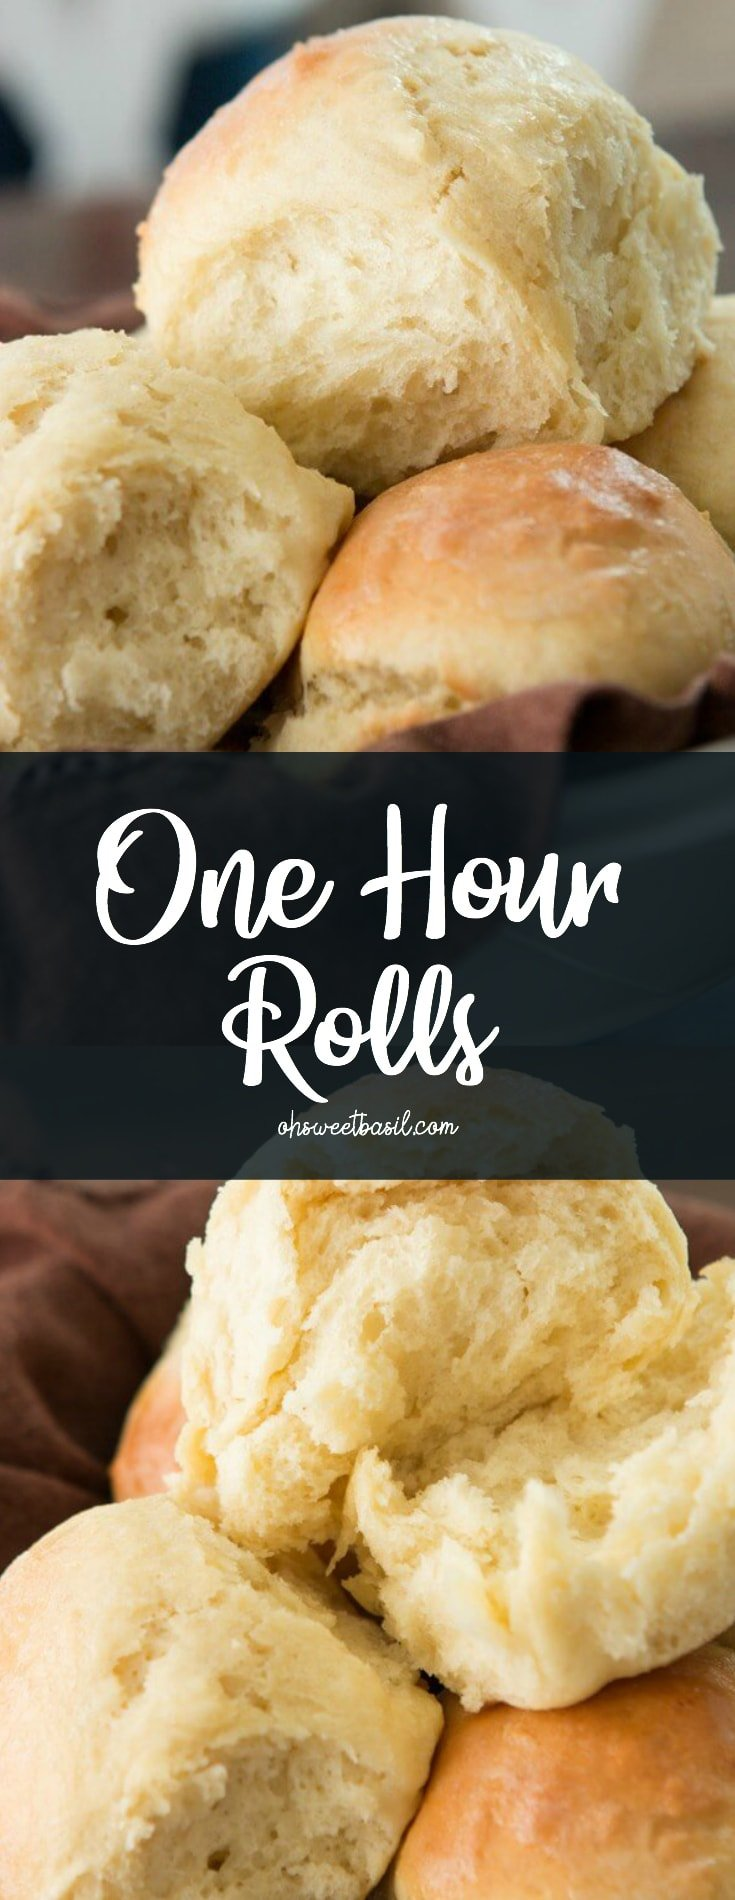 A stack of homemade one hour rolls